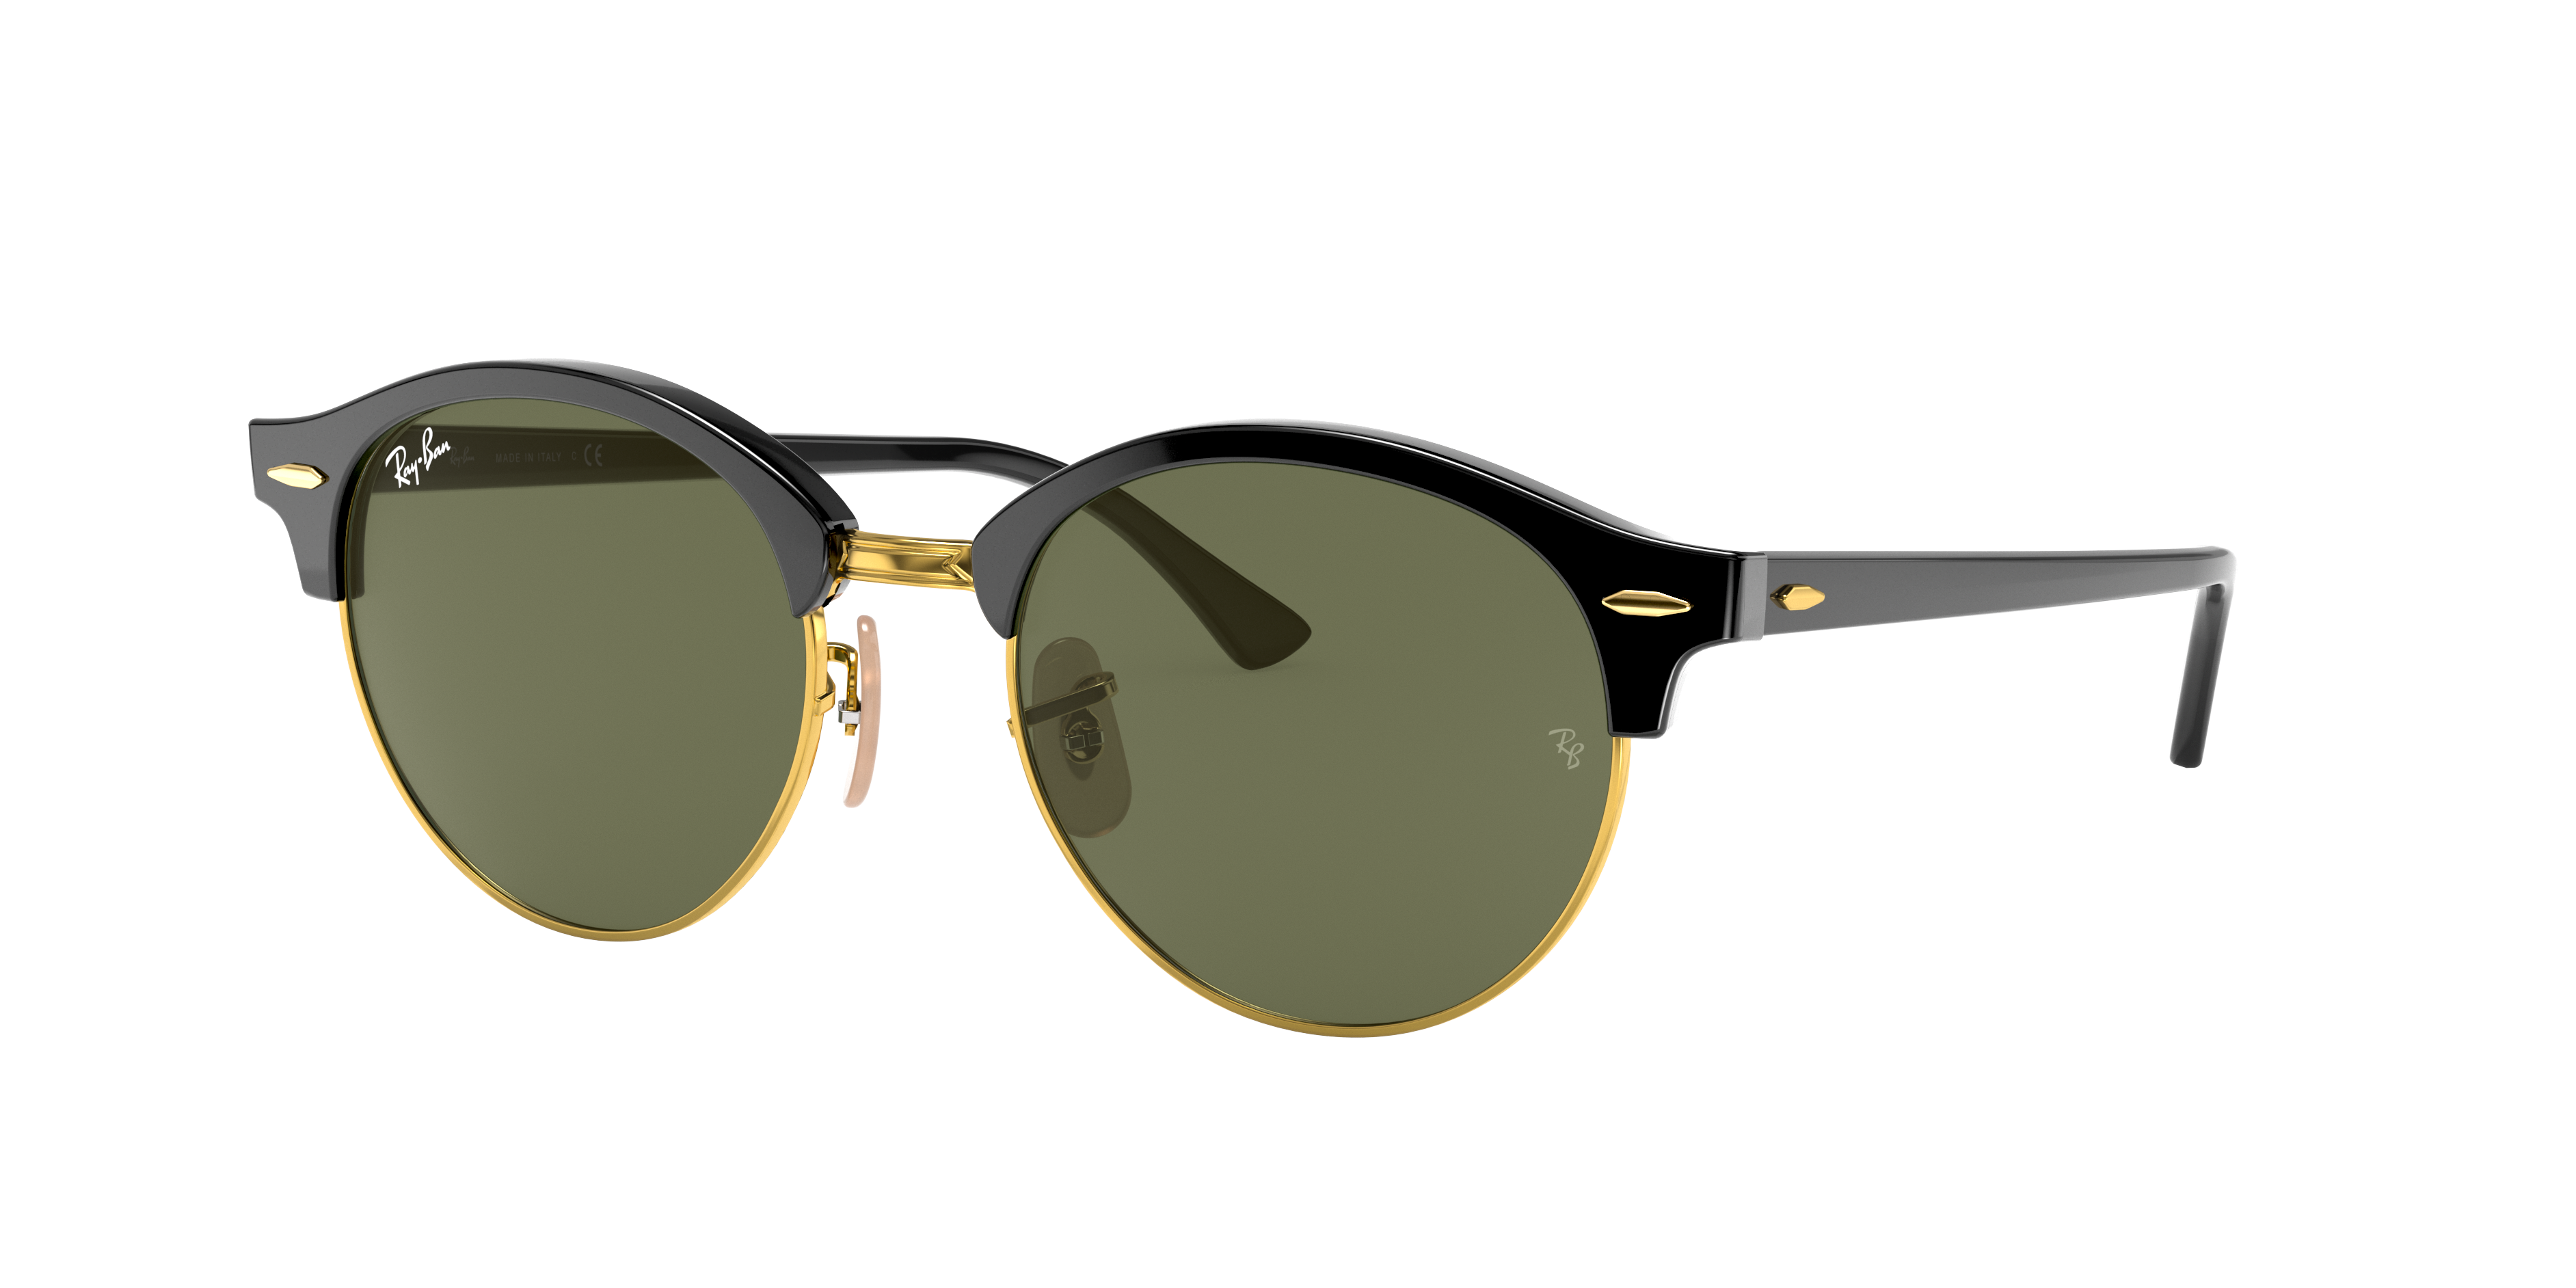 Ray-Ban Clubround Classic Low Bridge Fit Black, Green Lenses - RB4246F